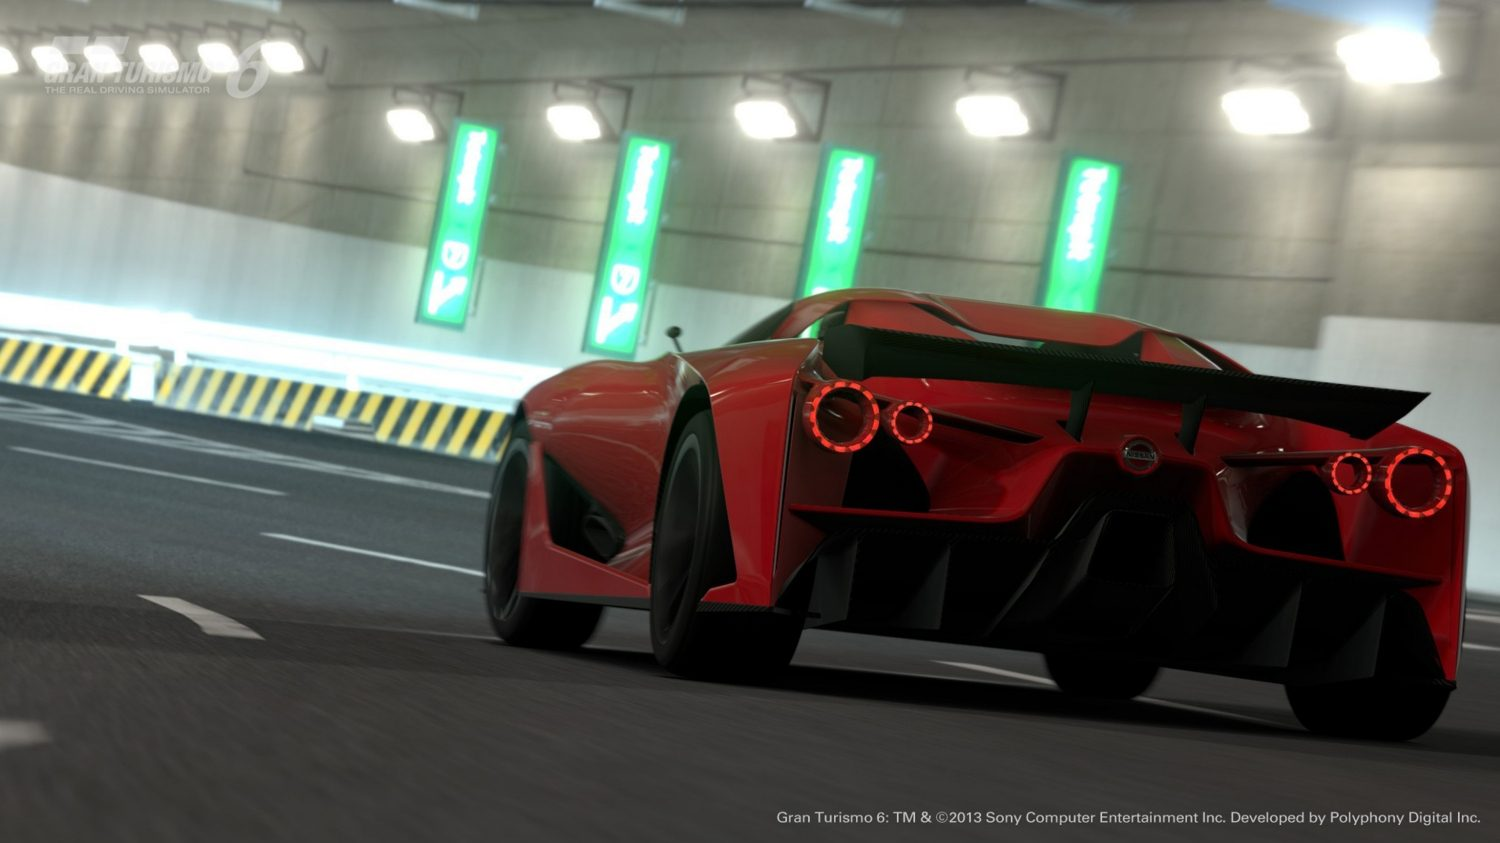 Nissan Concept 2020 Vision Gran Turismo low rear in tunnel